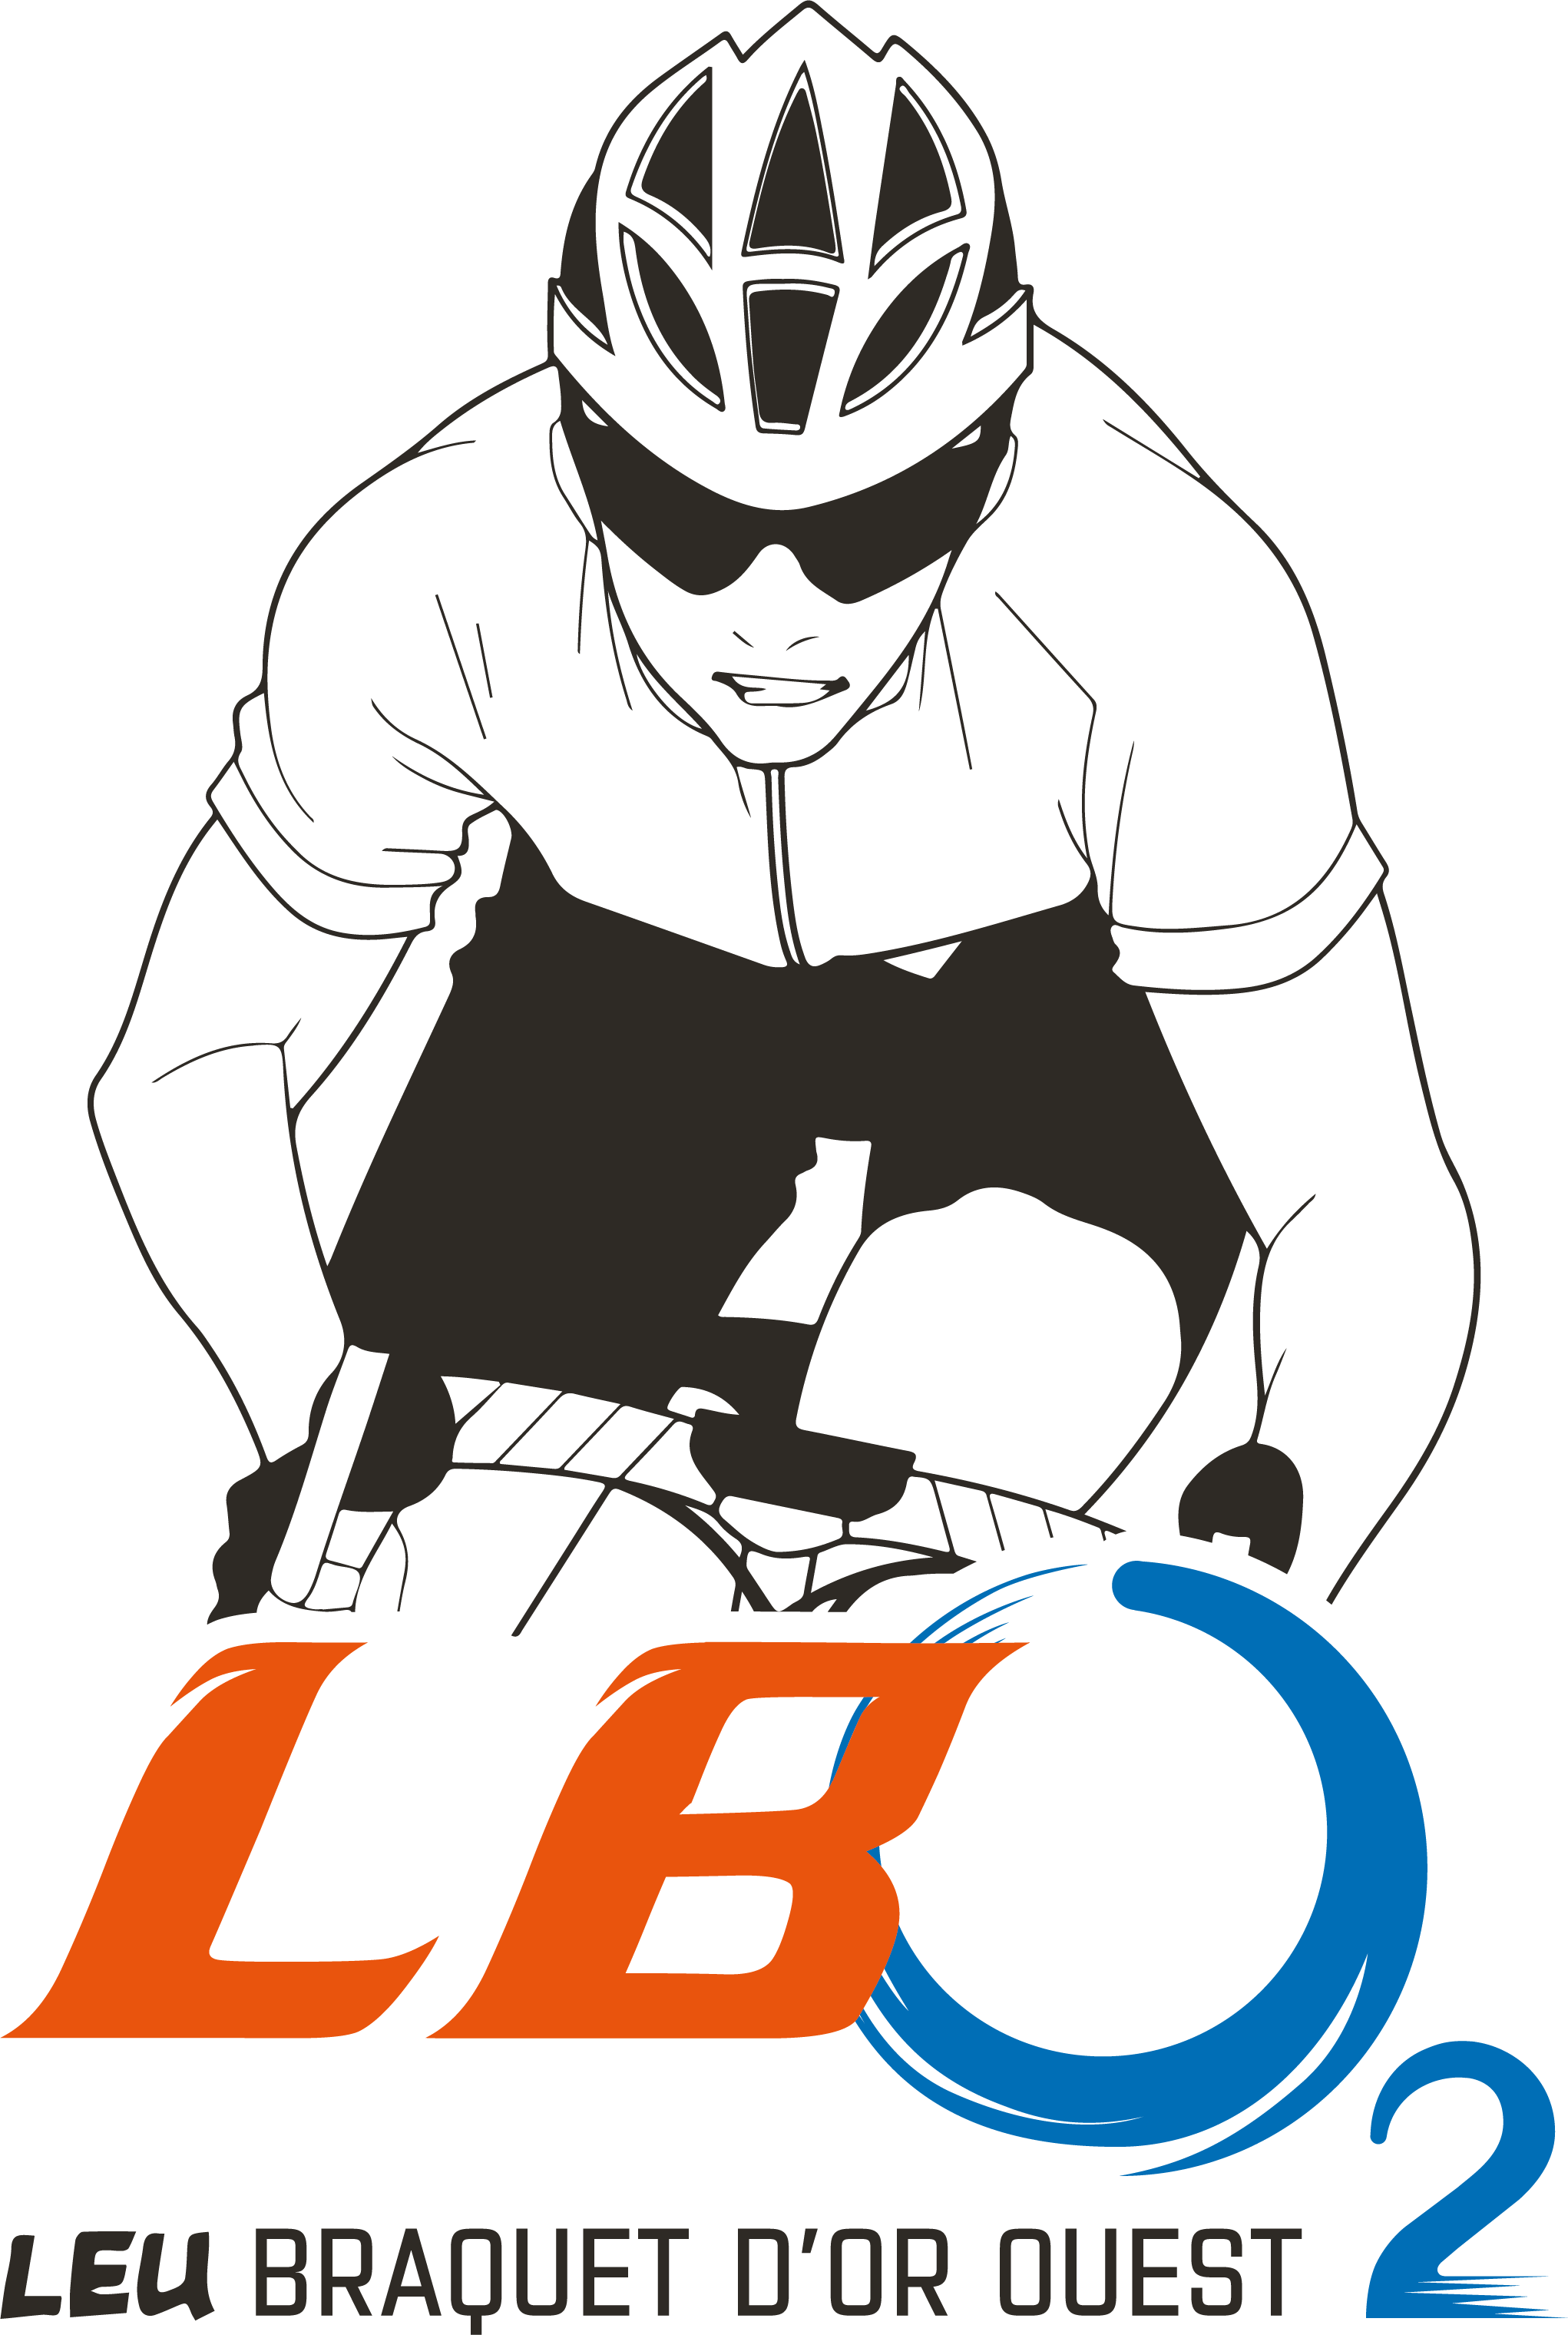 images/Clubs/LBO2.png